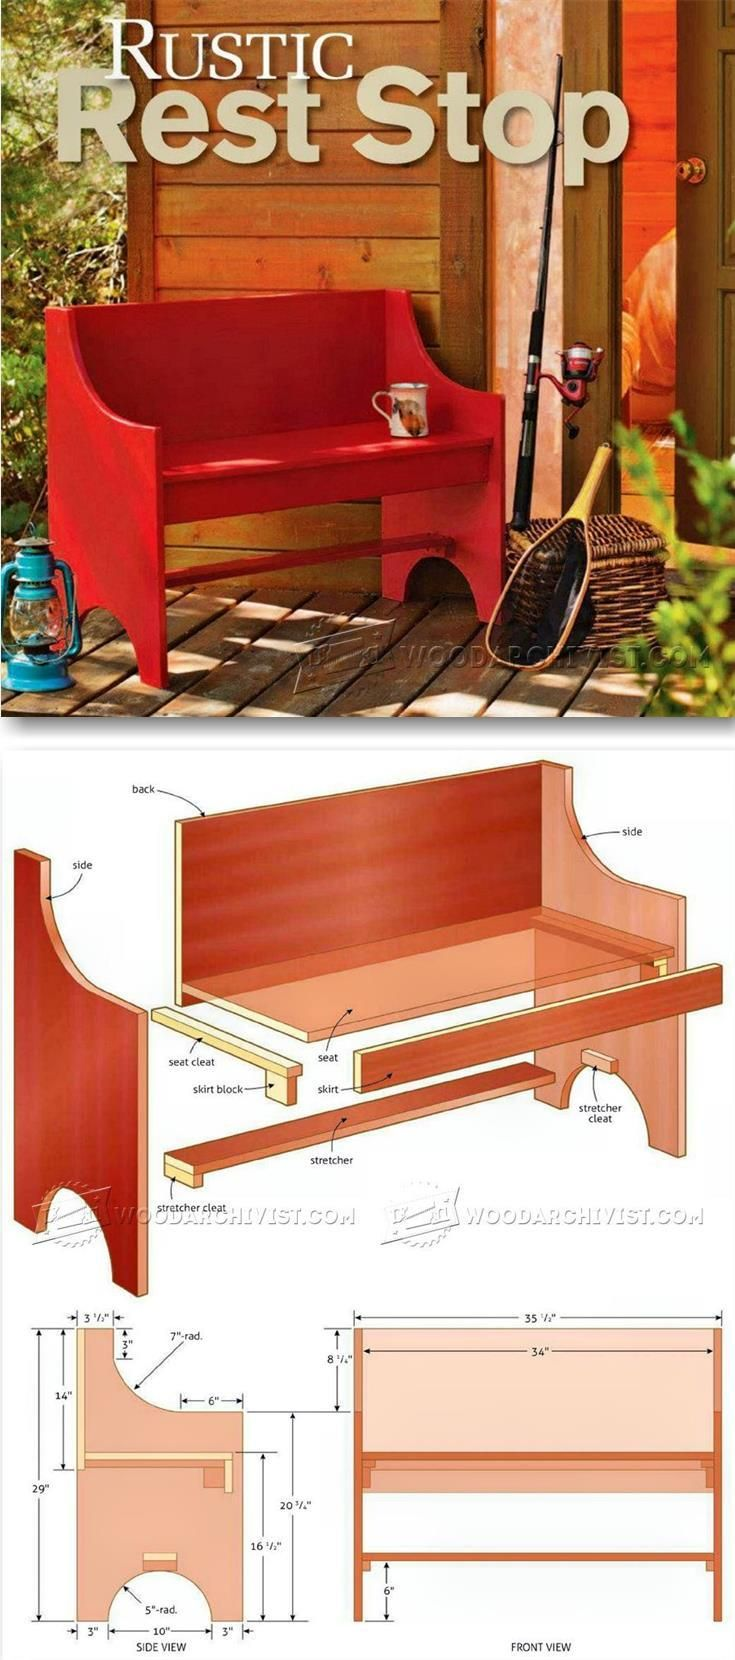 rustic furniture plans. rustic bench plans outdoor furniture and projects woodarchivistcom